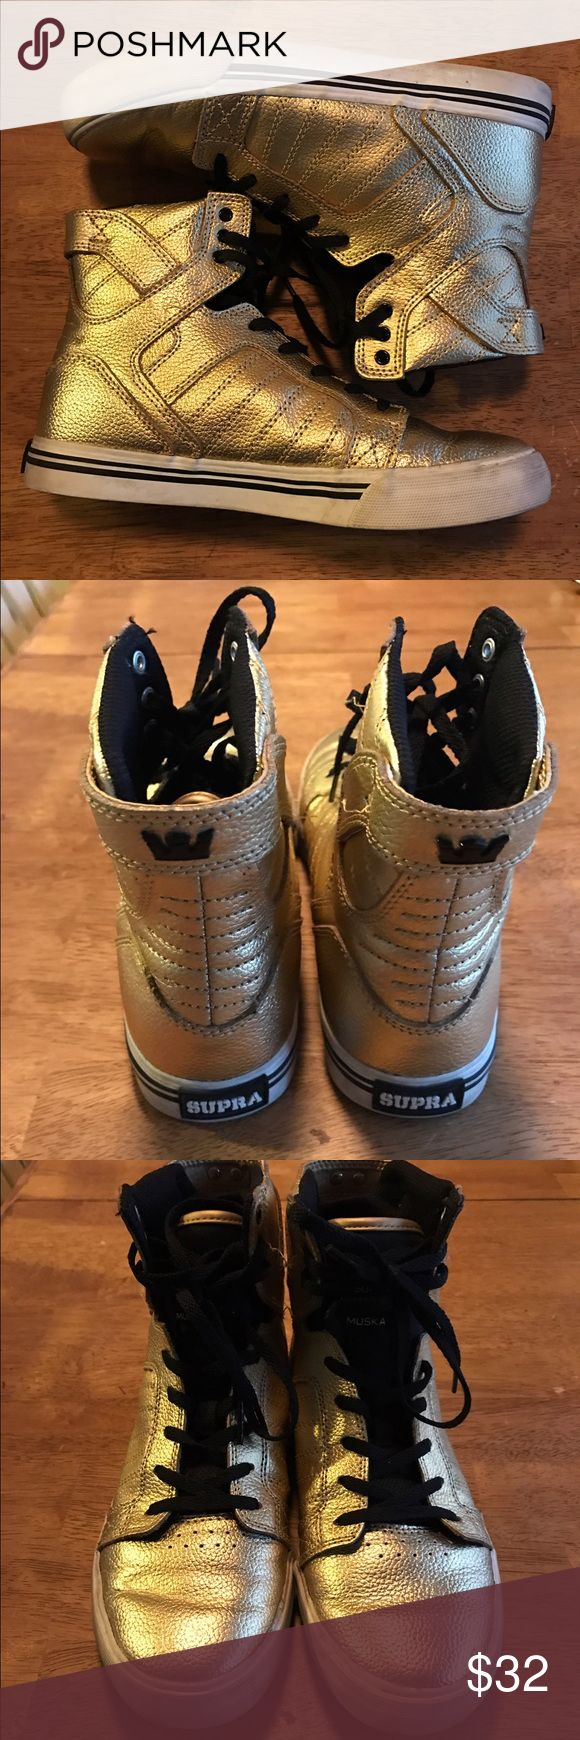 Supra Muska 001 Gold high tops Gold Supra high tops✨size 6✨excellent condition Supra Shoes Sneakers